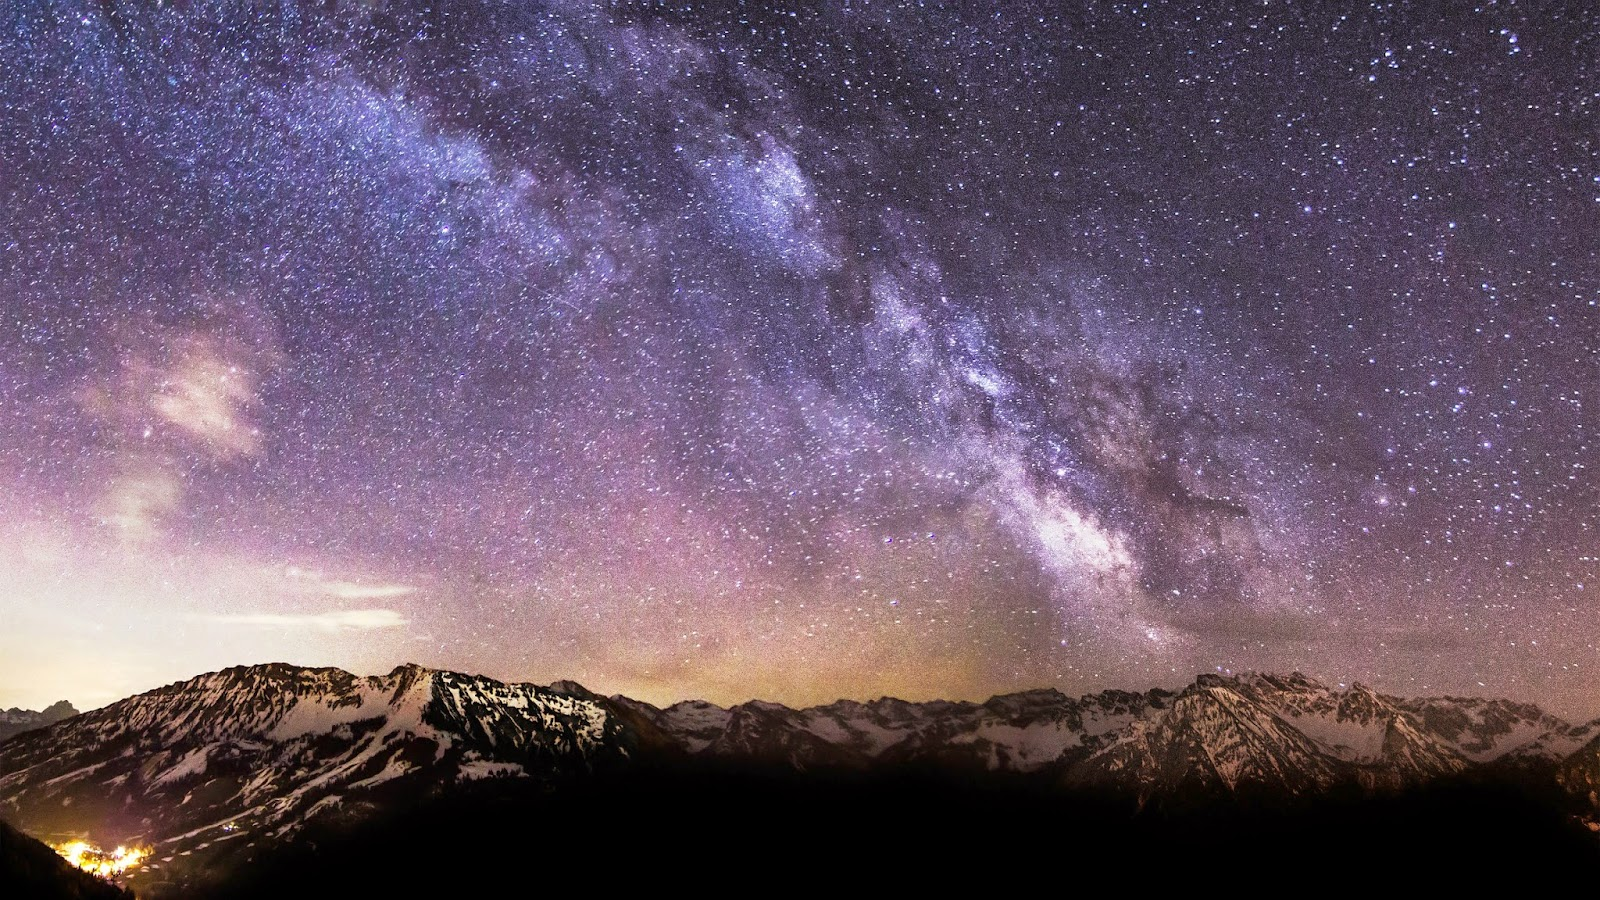 Hd Wallpapers Collection Of Stars Amazing Sky View Hd Wide